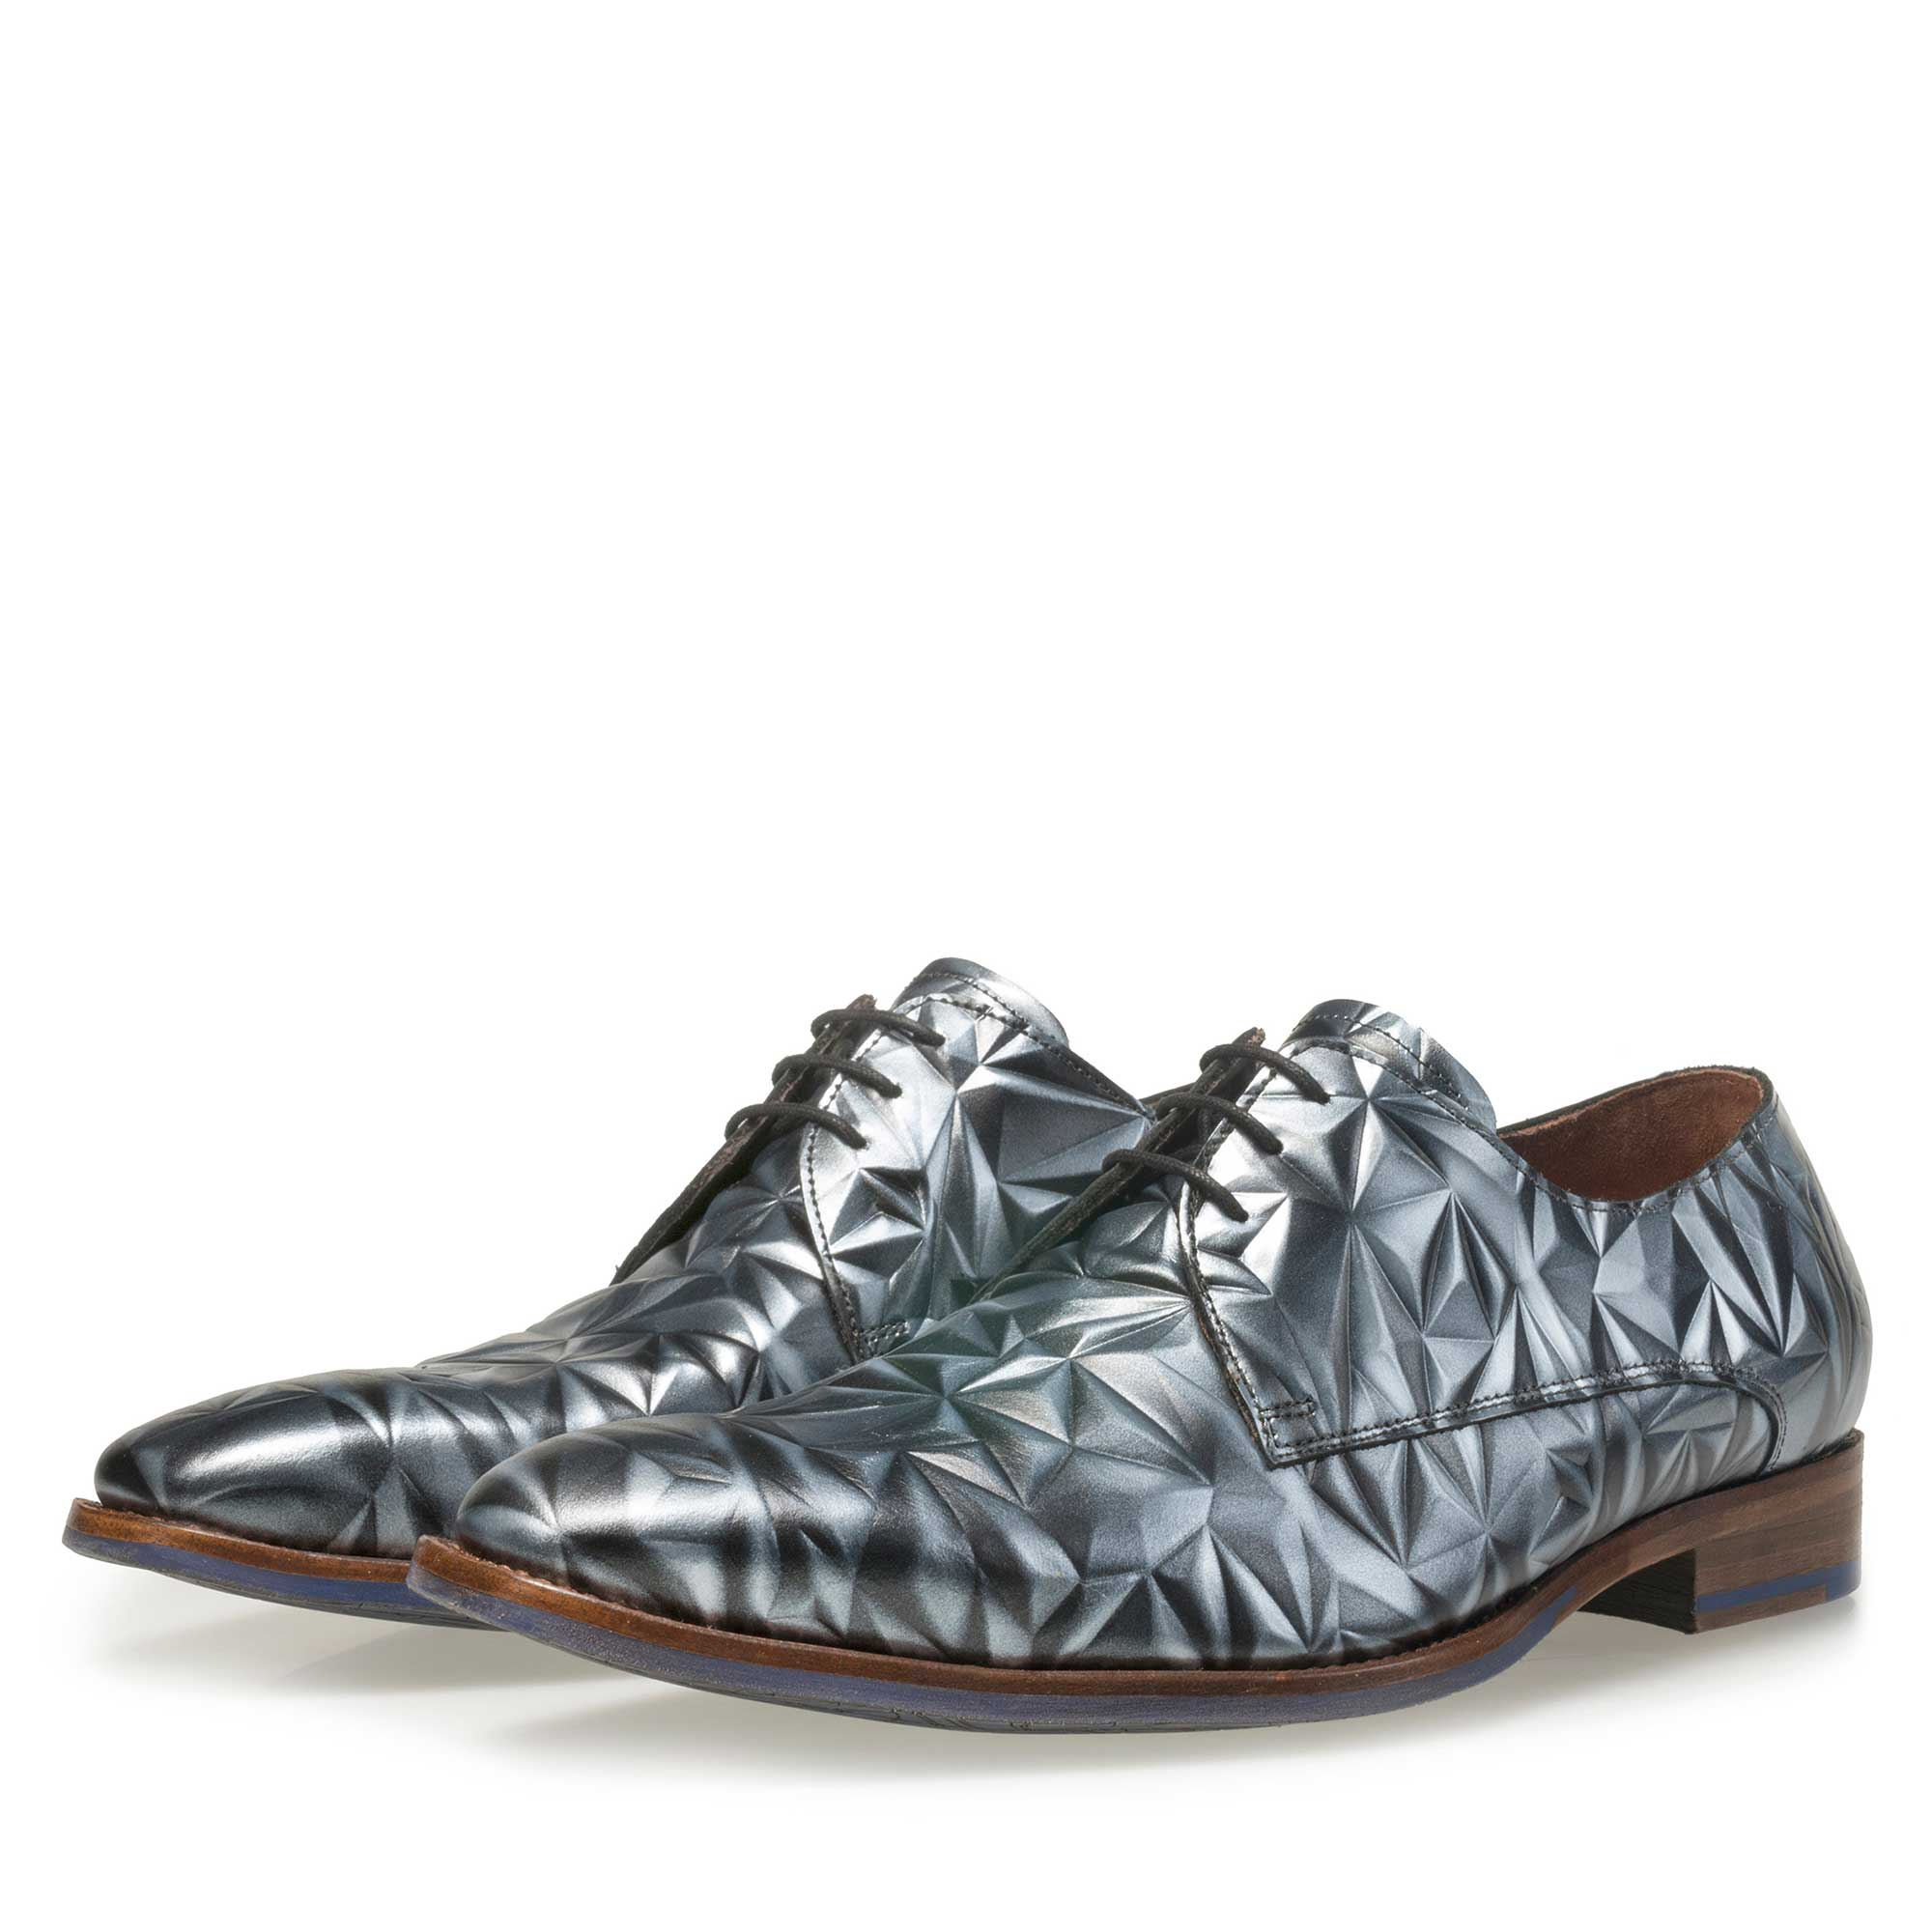 14237/02 - Floris van Bommel men's grey leather lace shoe finished with a silver 3D effect